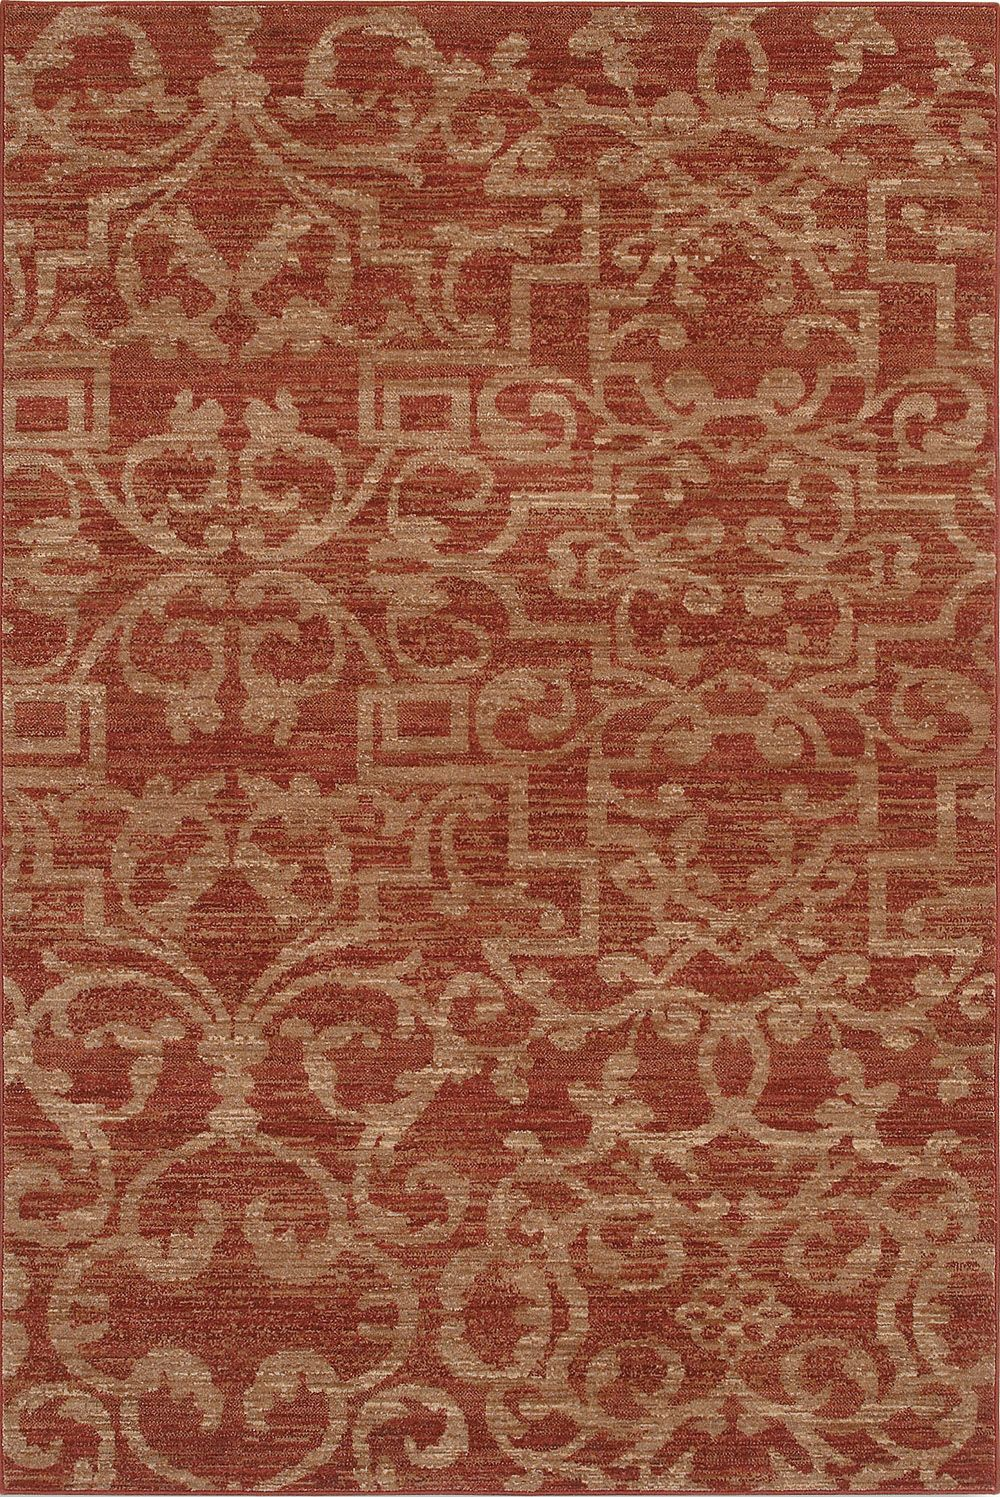 35505 33017 Area Rugs Rugs Traditional Rugs